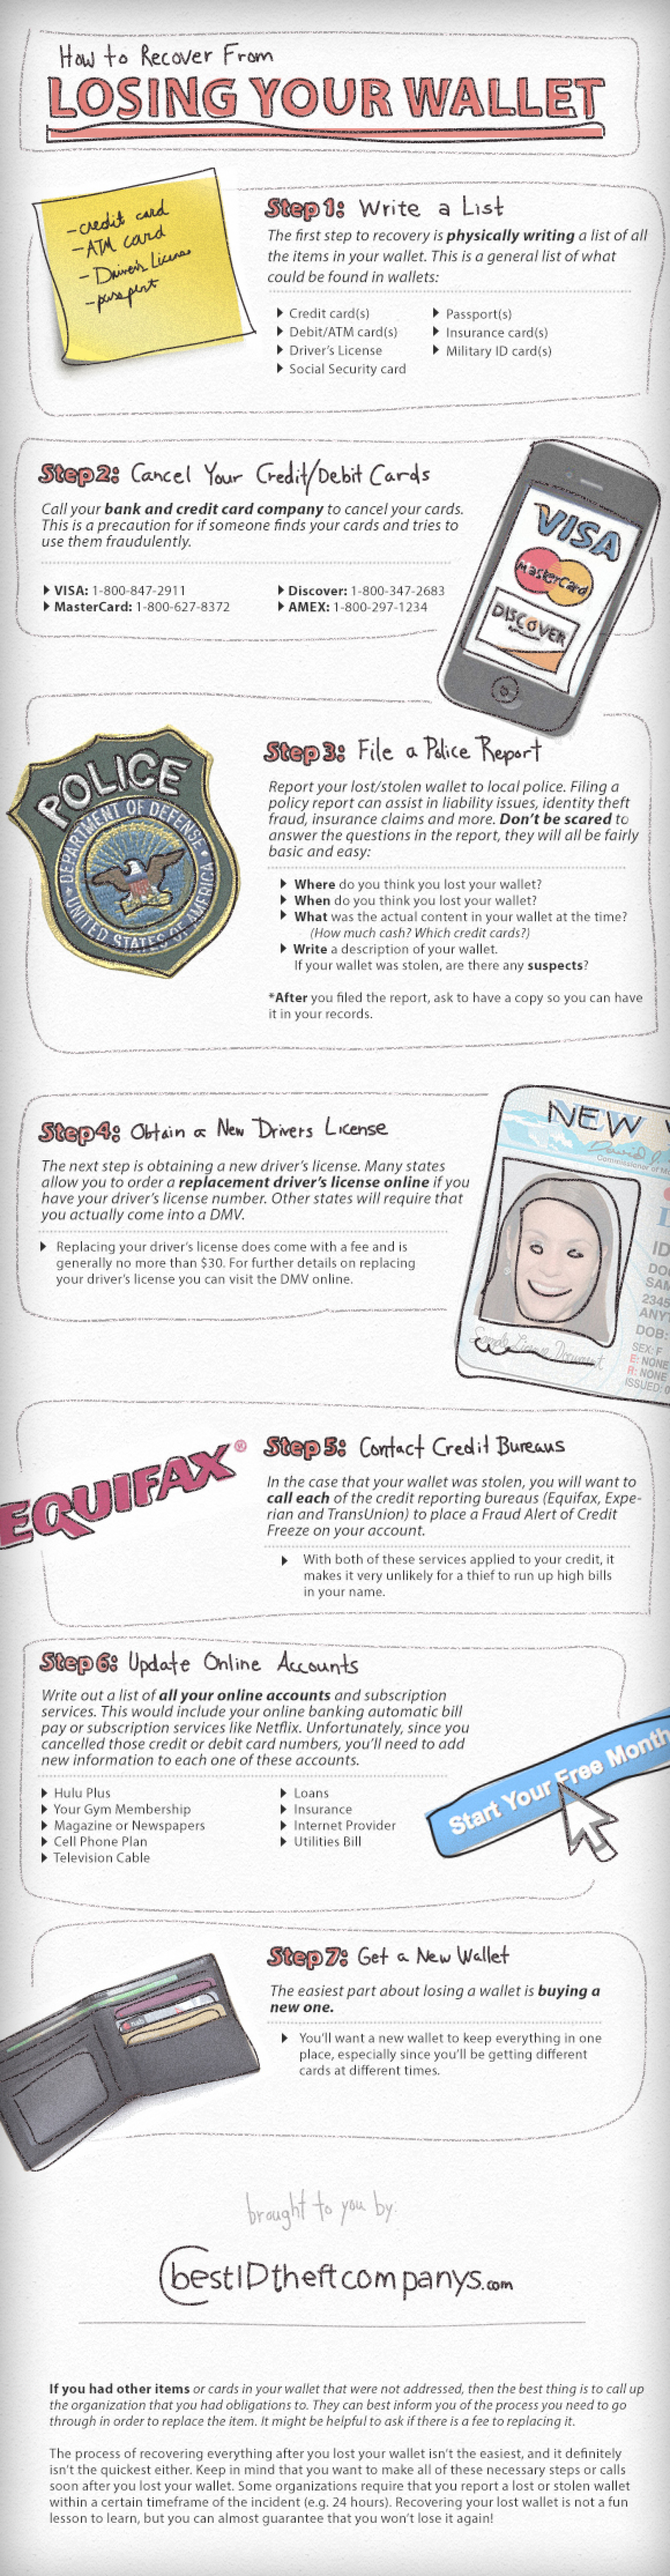 How to Recover From Losing Your Wallet Infographic